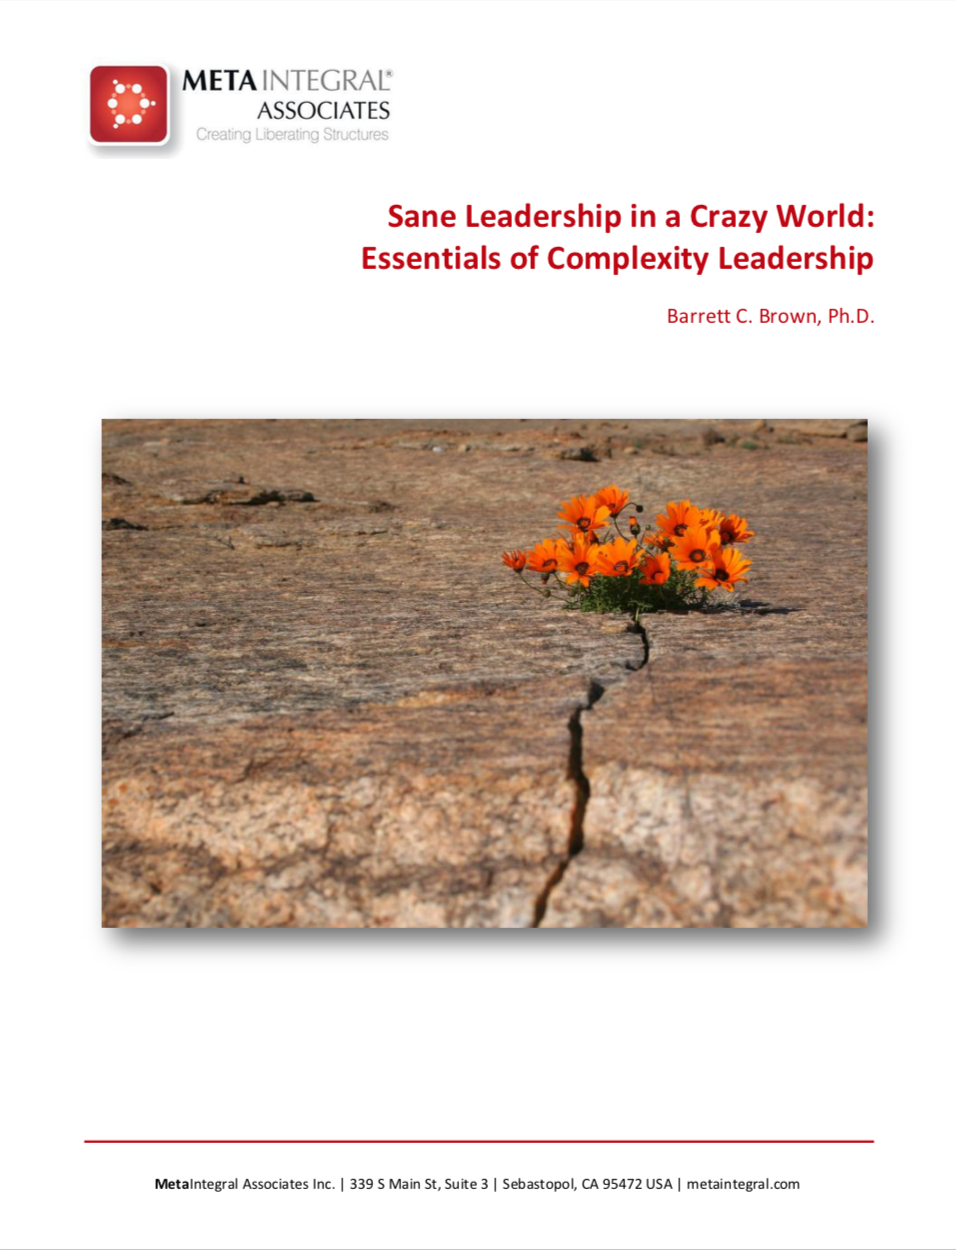 sane leadership in a crazy world: Essentials of complexity leadership - A cheat-sheet about complexity for leaders and change agents searching for less zaniness and greater clarity about how to navigate rapid change, complex environments and the need for constant creativity.